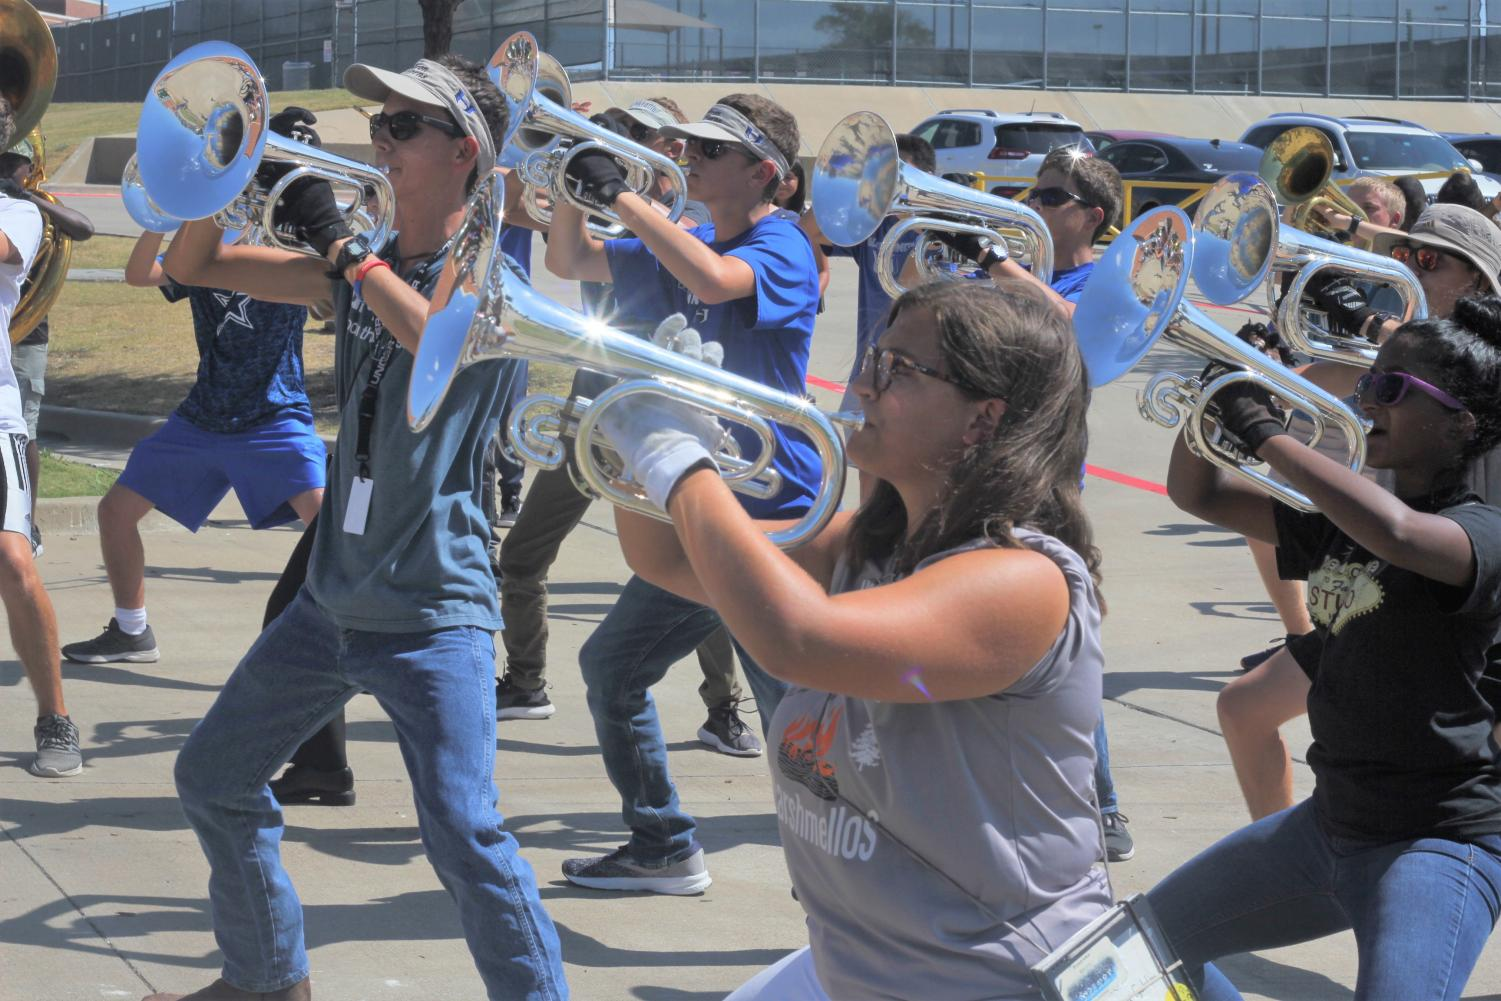 Sophomore mellophone player Susanna Egelston rehearses choreography with the rest of the brass sections during 3rd period the Wednesday before BOA Dallas. Band utilizes time during their separate class periods to supplement material learned altogether during after school rehearsals.